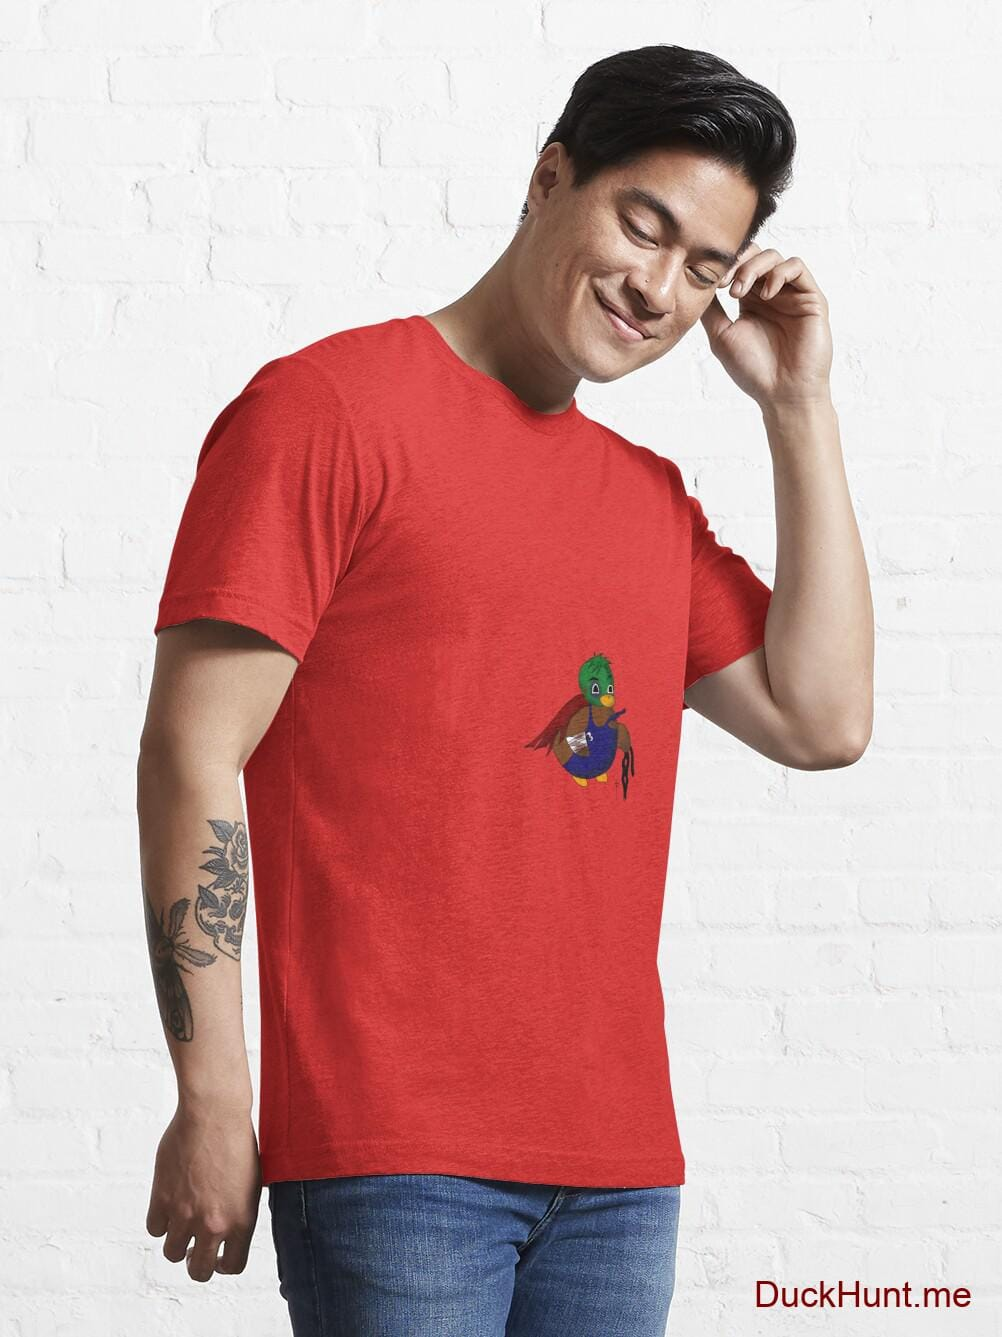 Dead DuckHunt Boss (smokeless) Red Essential T-Shirt (Front printed) alternative image 6